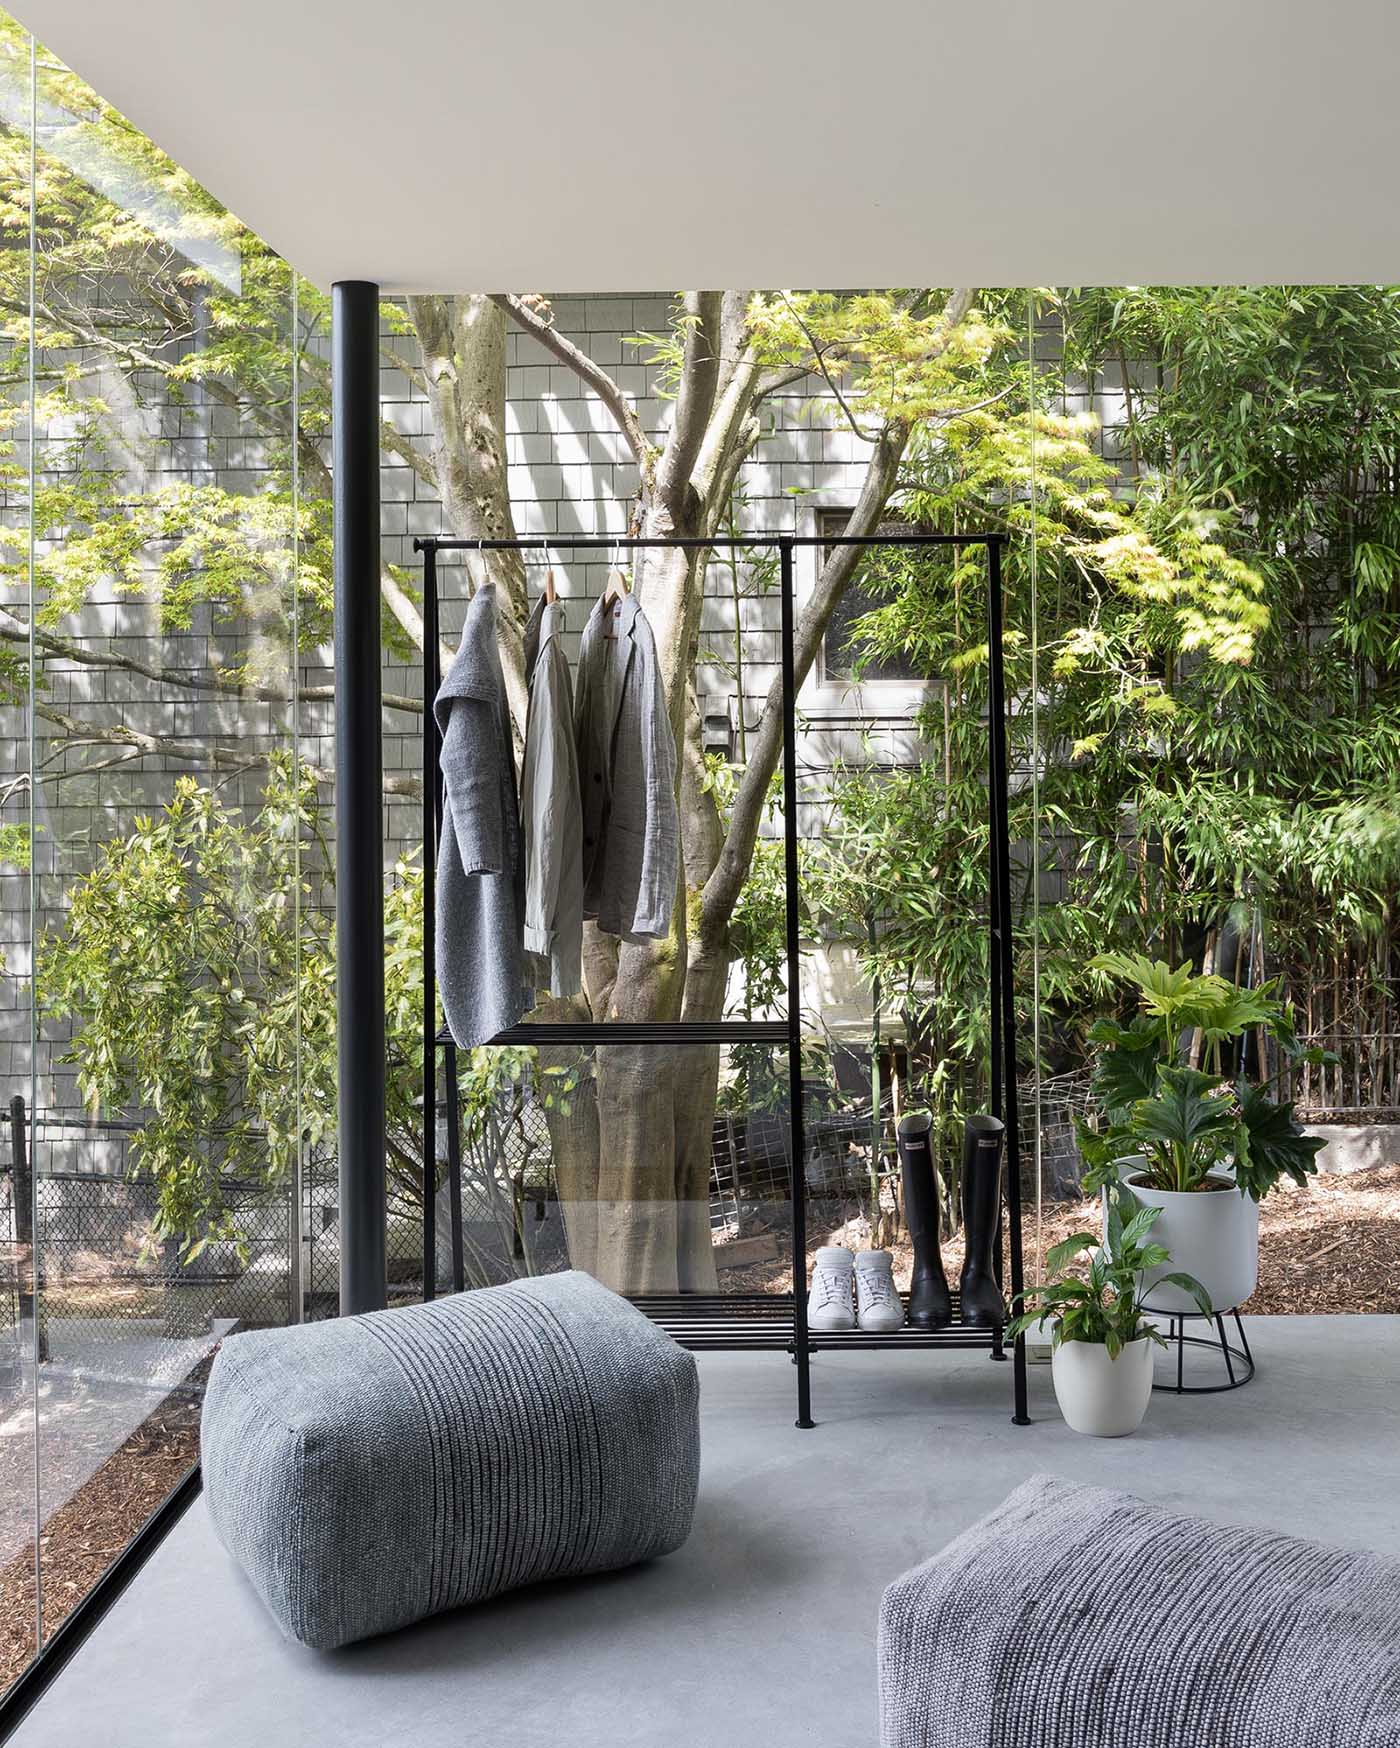 This updated light filled home has a new glass enclosed entryway with black frames, creating a contemporary addition to the brick and wood house.